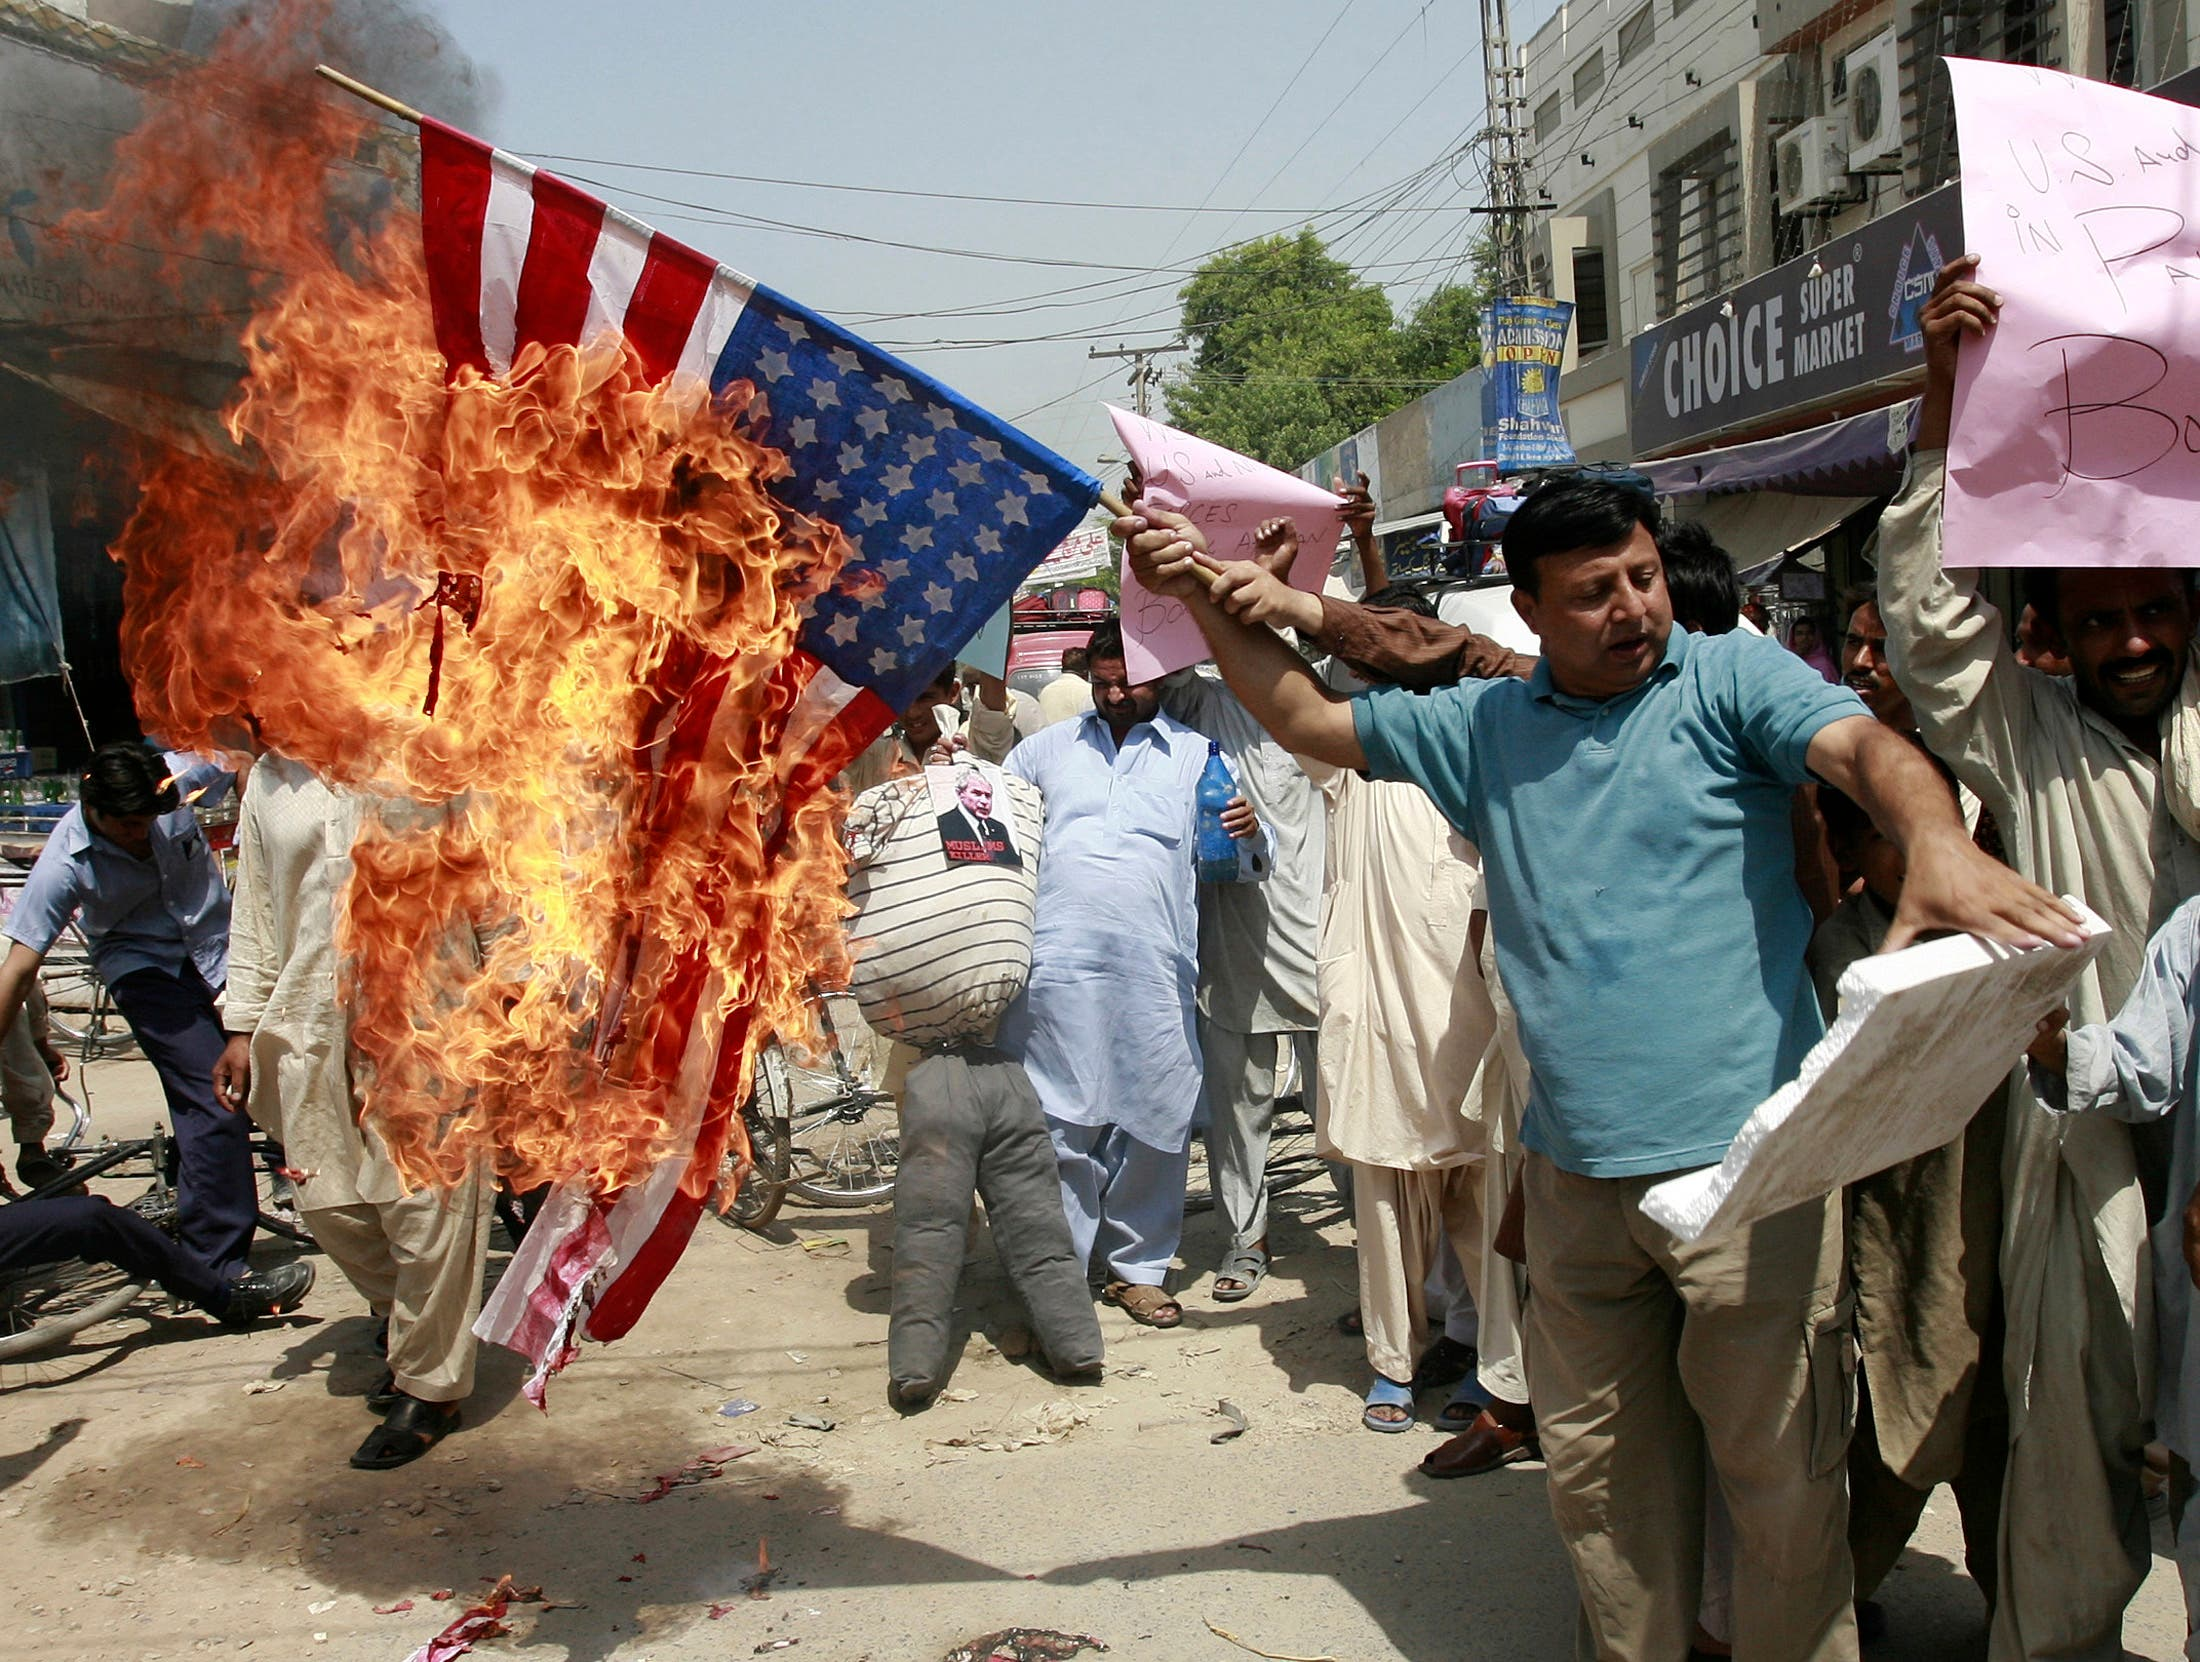 Pakistani traders burn a U.S. flag to protest against strikes in Pakistani tribal areas along the Afghan border, pictured on Sept. 10, 2008. (File photo: Reuters)